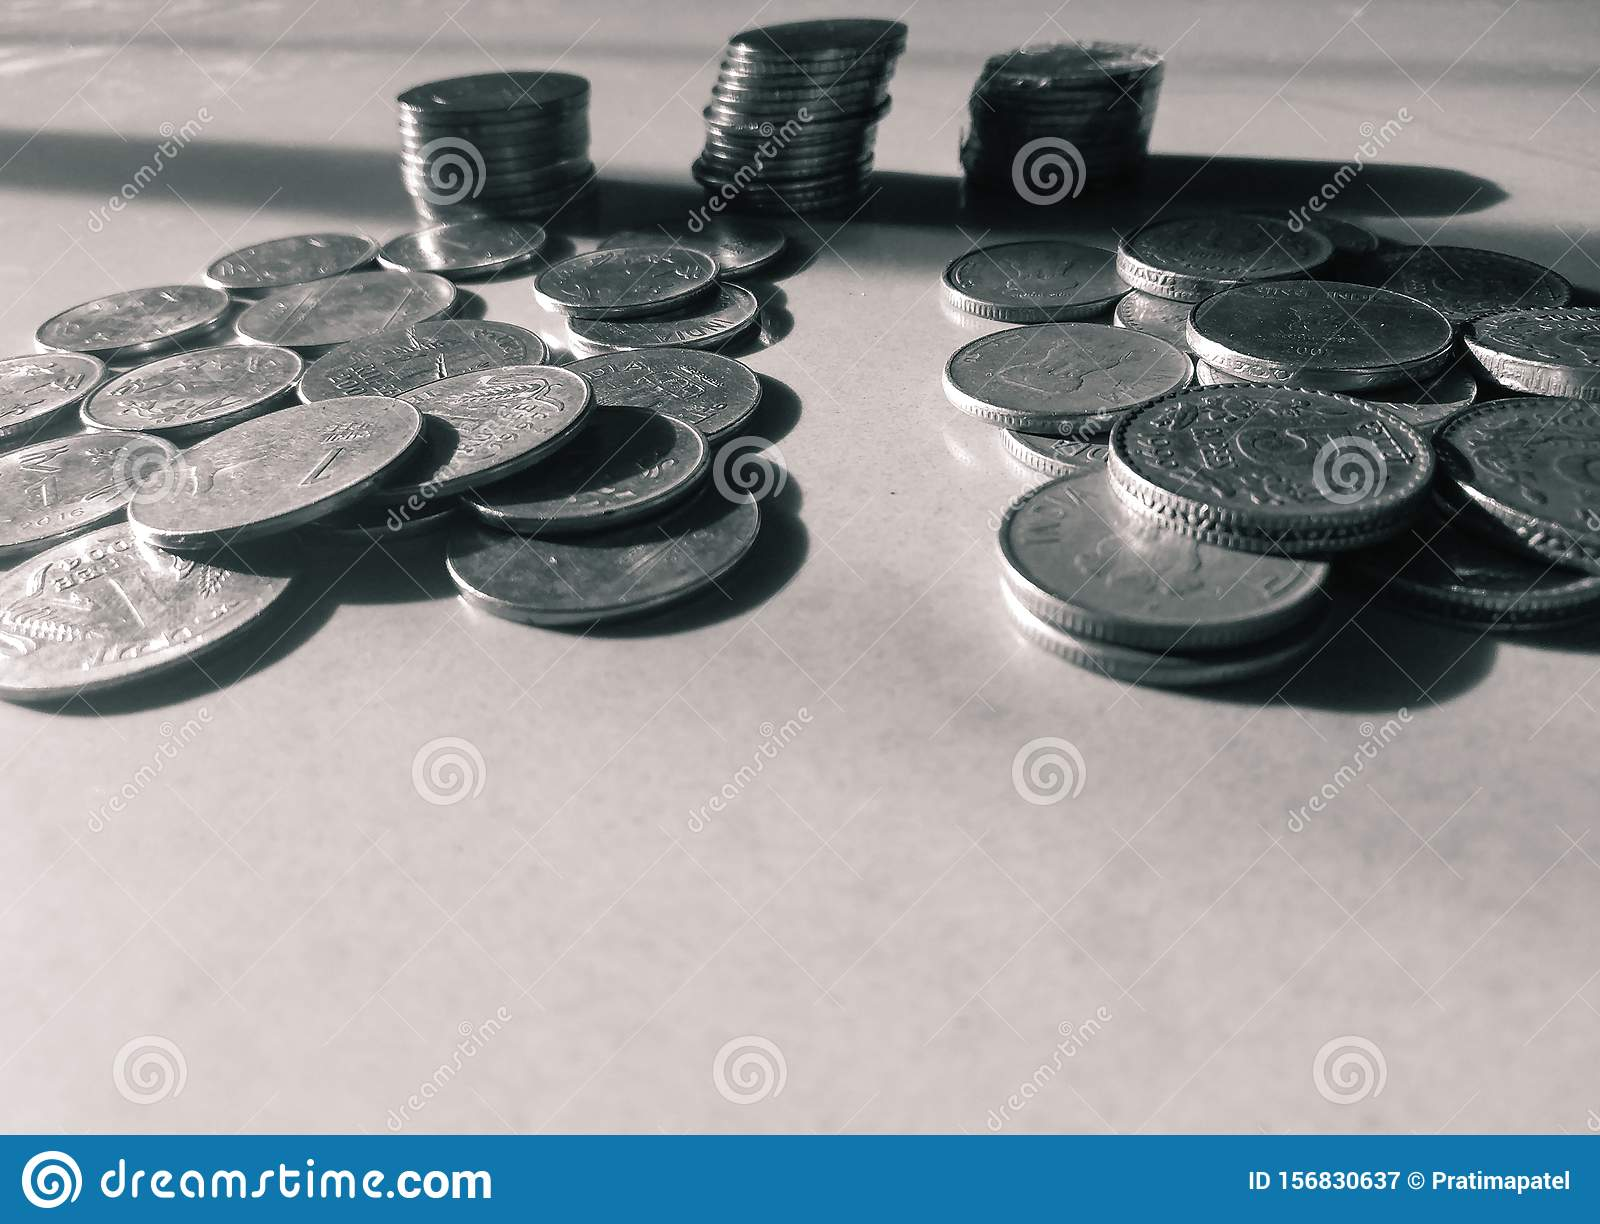 Indian currency coins in a white marble background